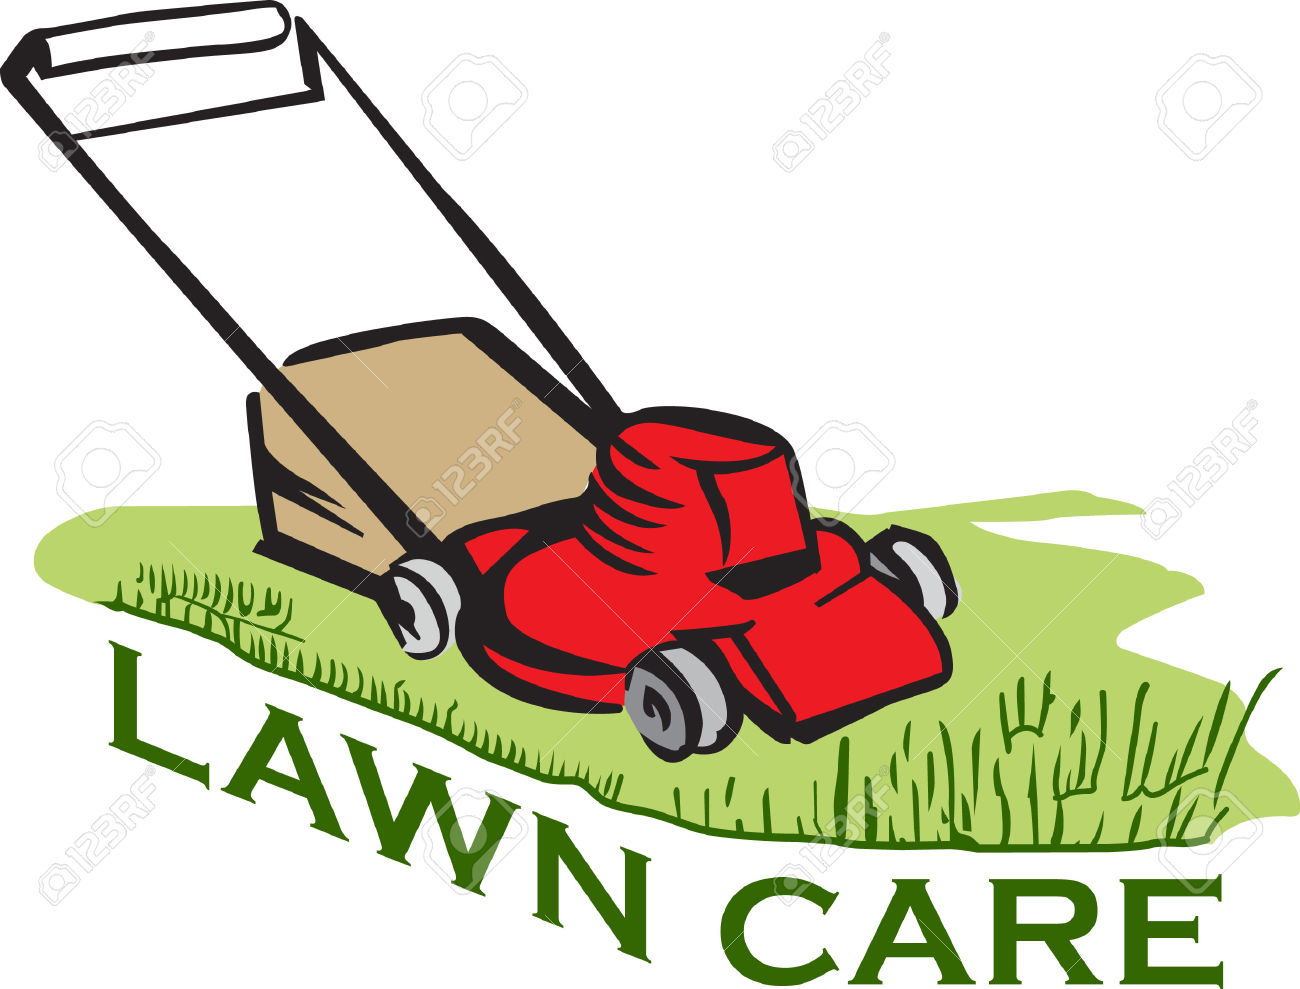 1300x989 Lawn Mower Clipart, Suggestions For Lawn Mower Clipart, Download